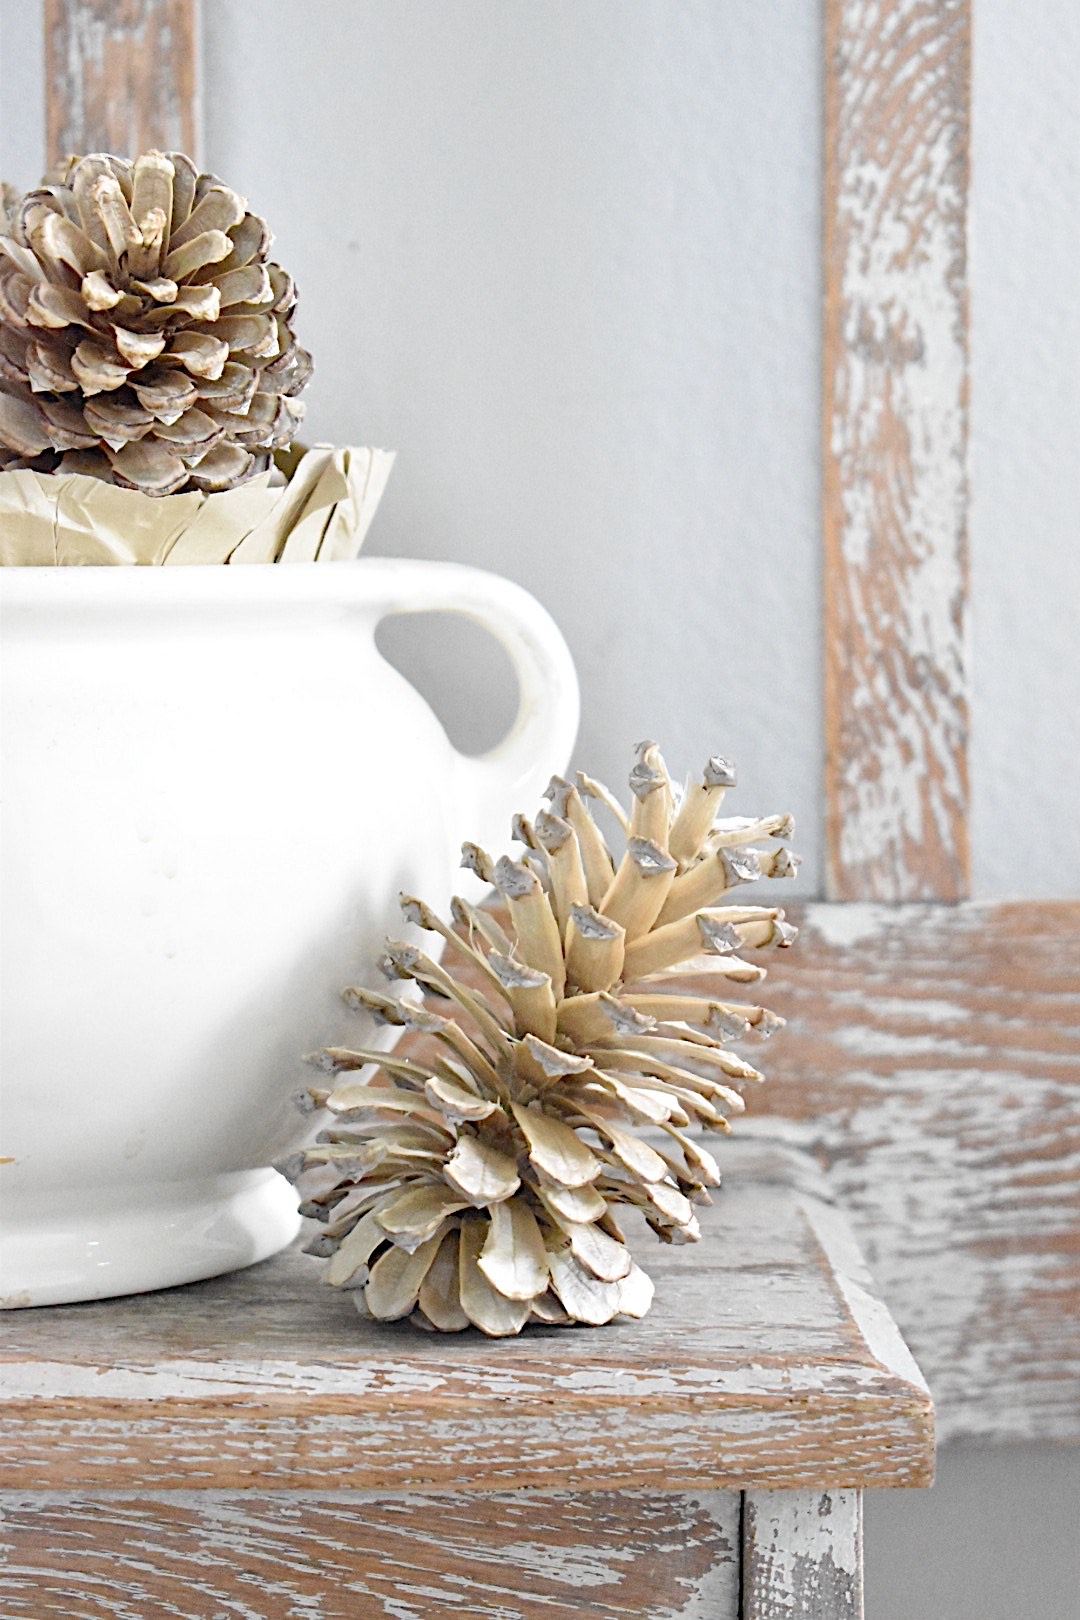 bleached pinecone sitting beside white ironstone pot